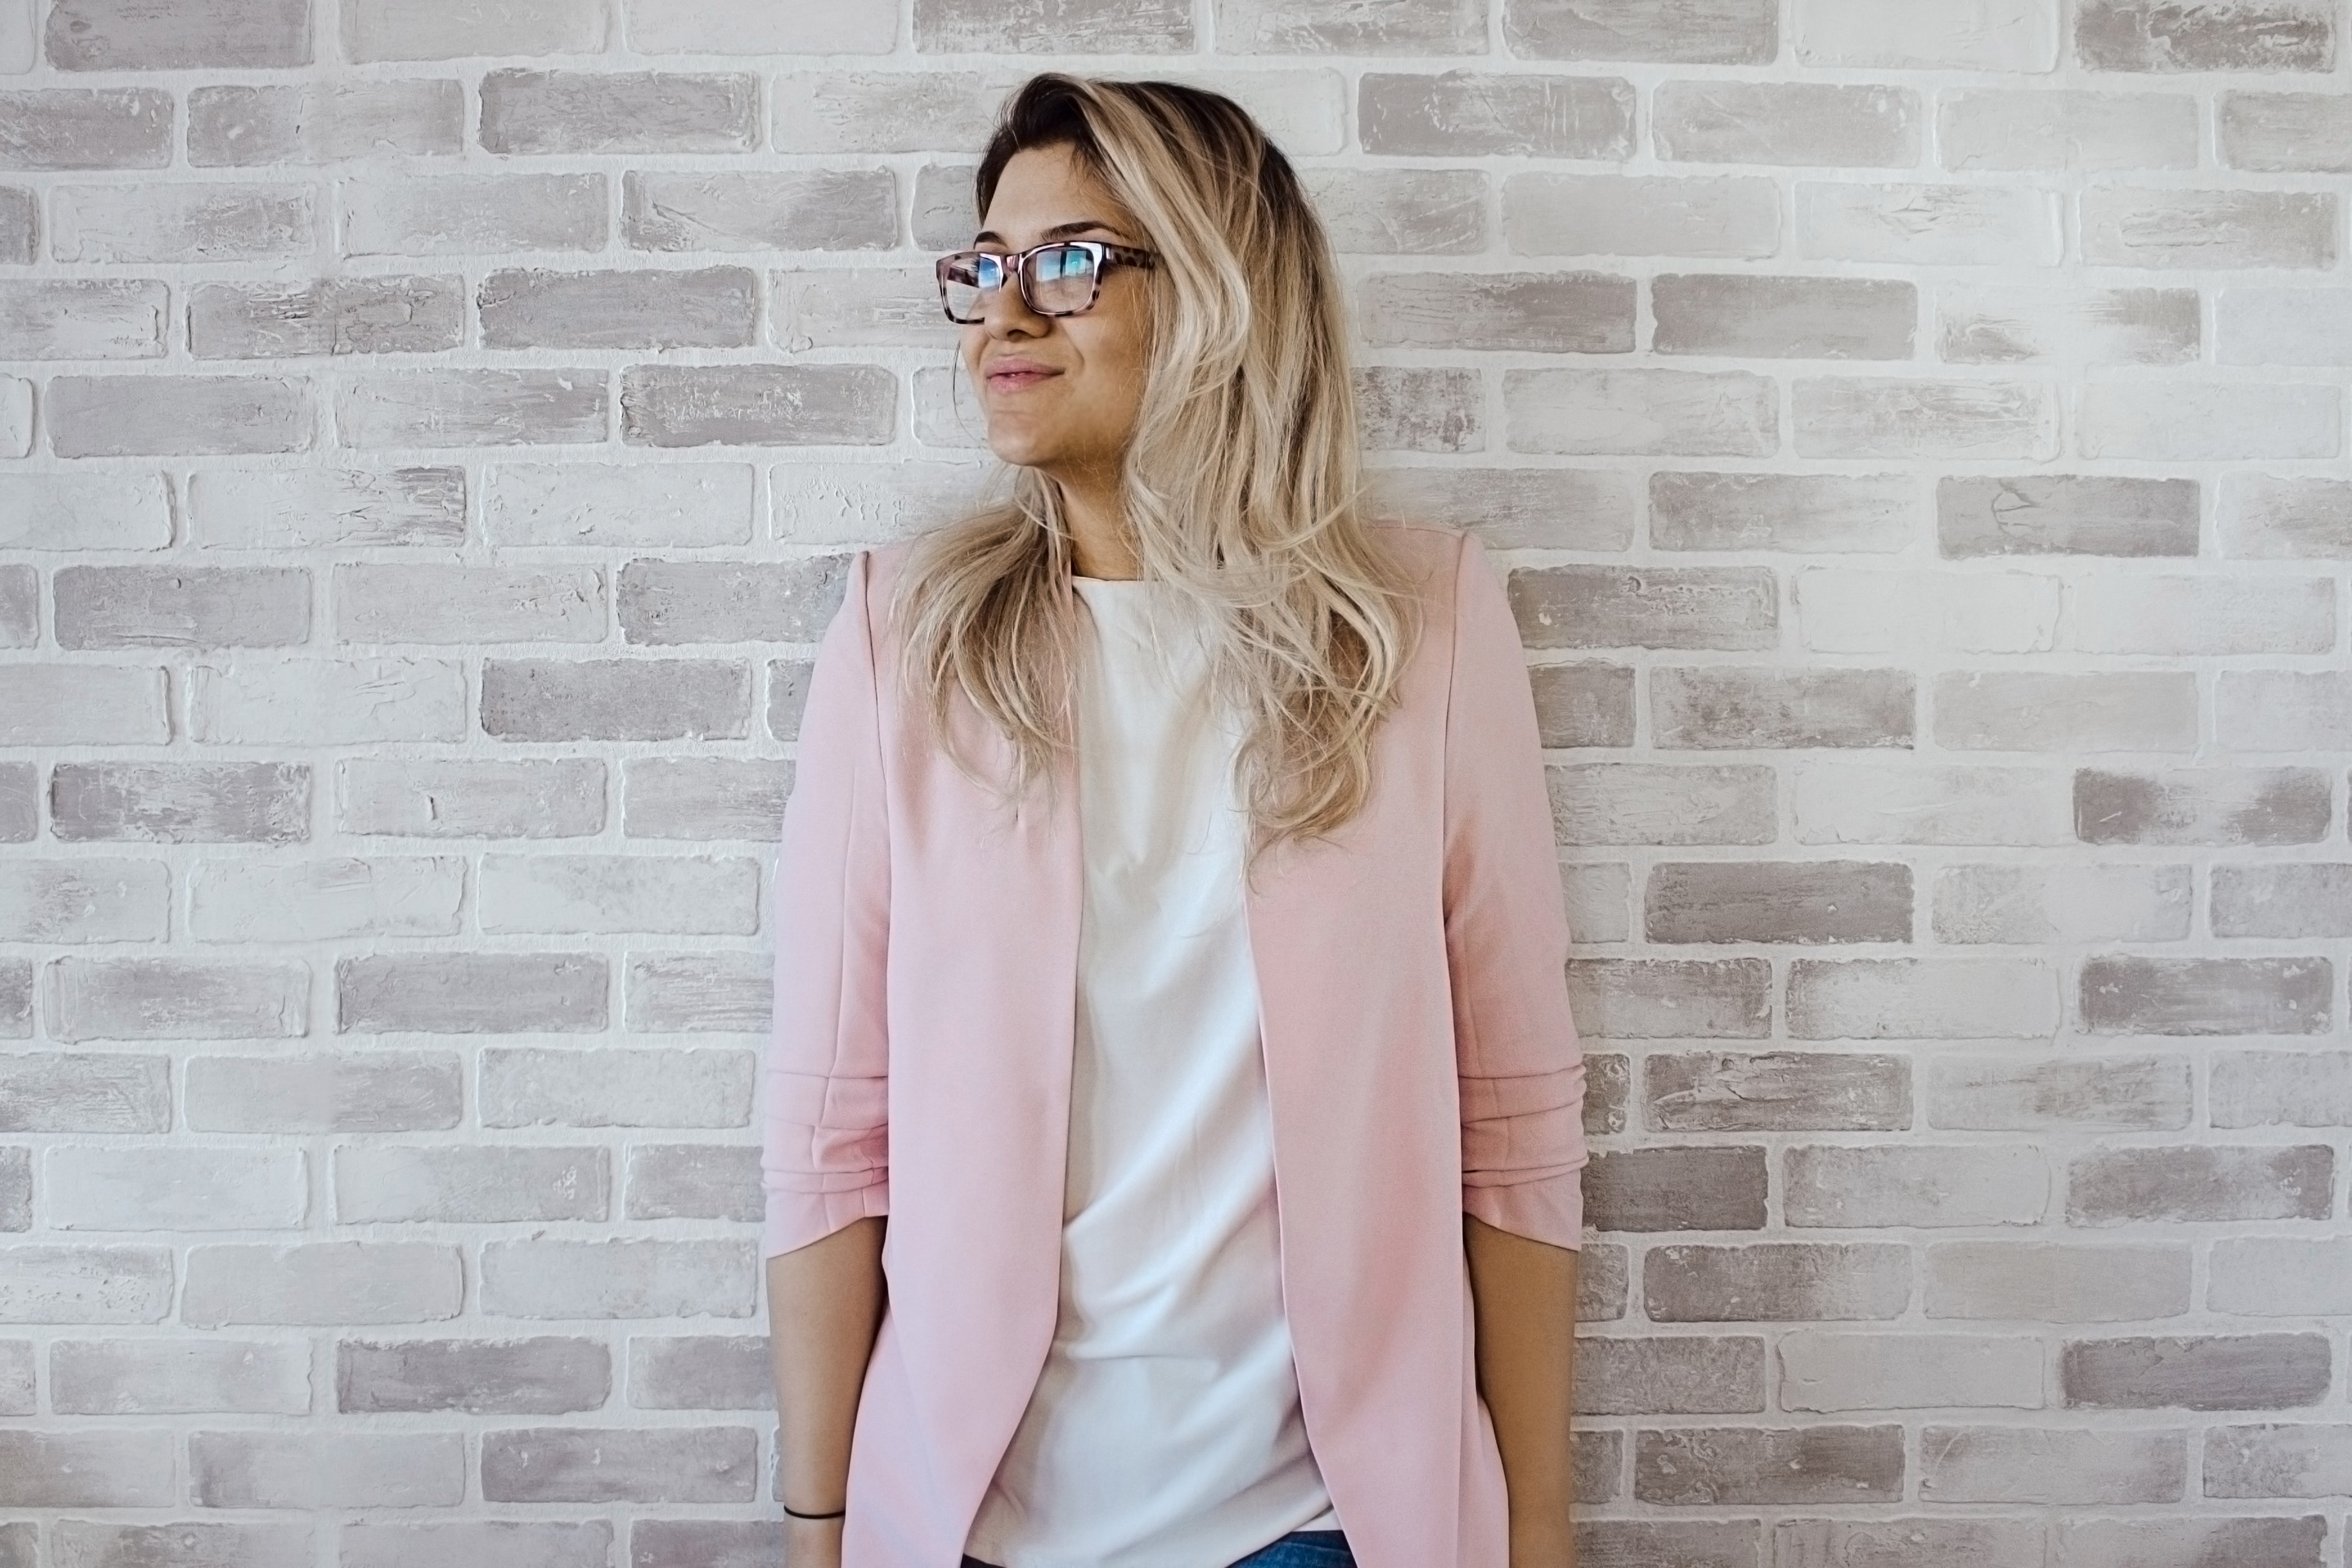 Woman in pink cardigan and white shirt leaning on the wall photo